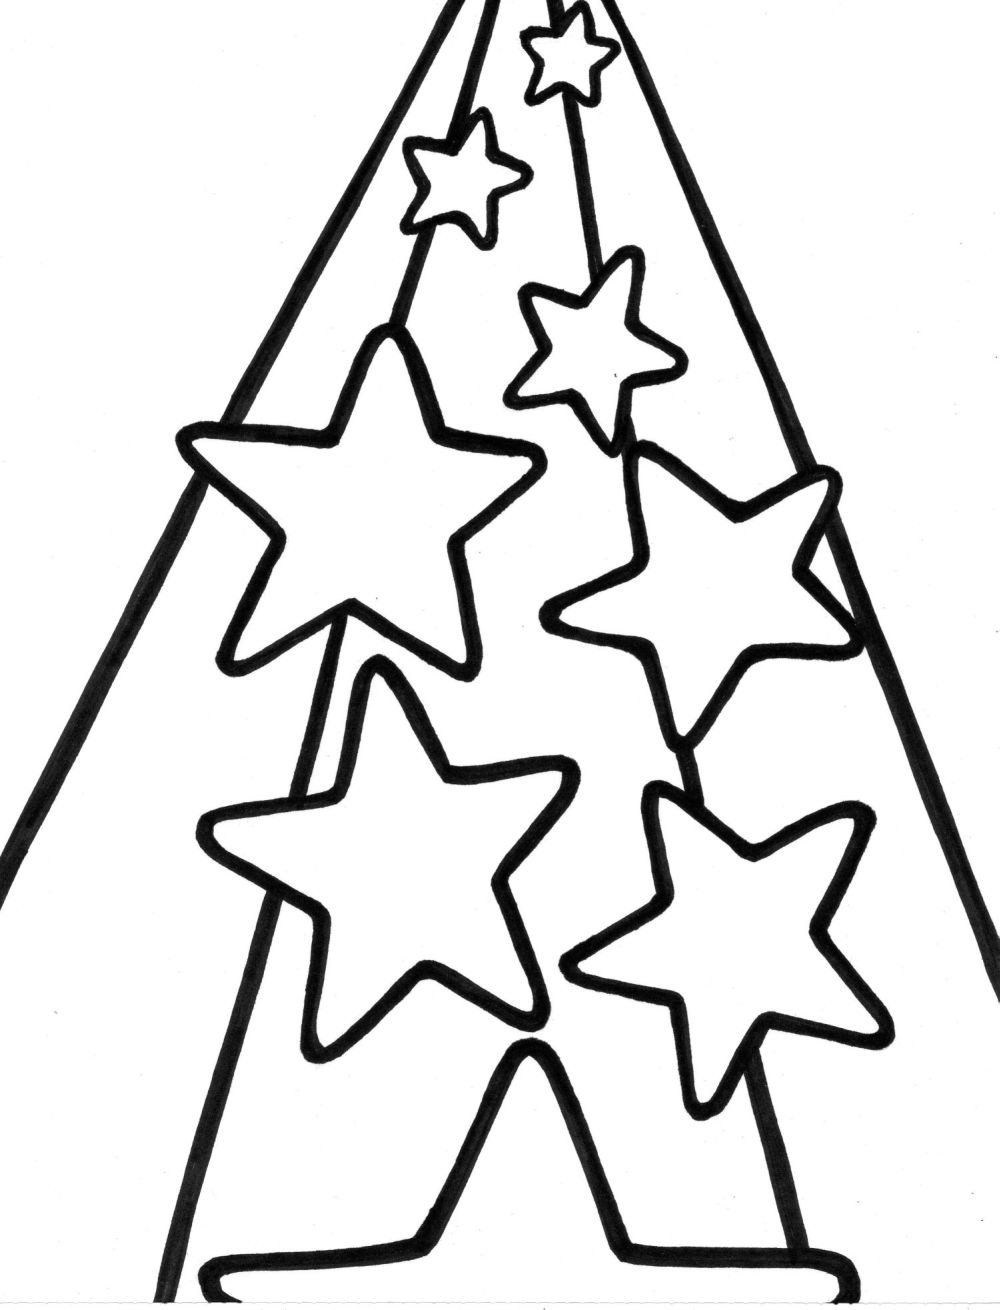 Coloring Page Of A Star Star Drawlings Coloring Pages Print Coloring